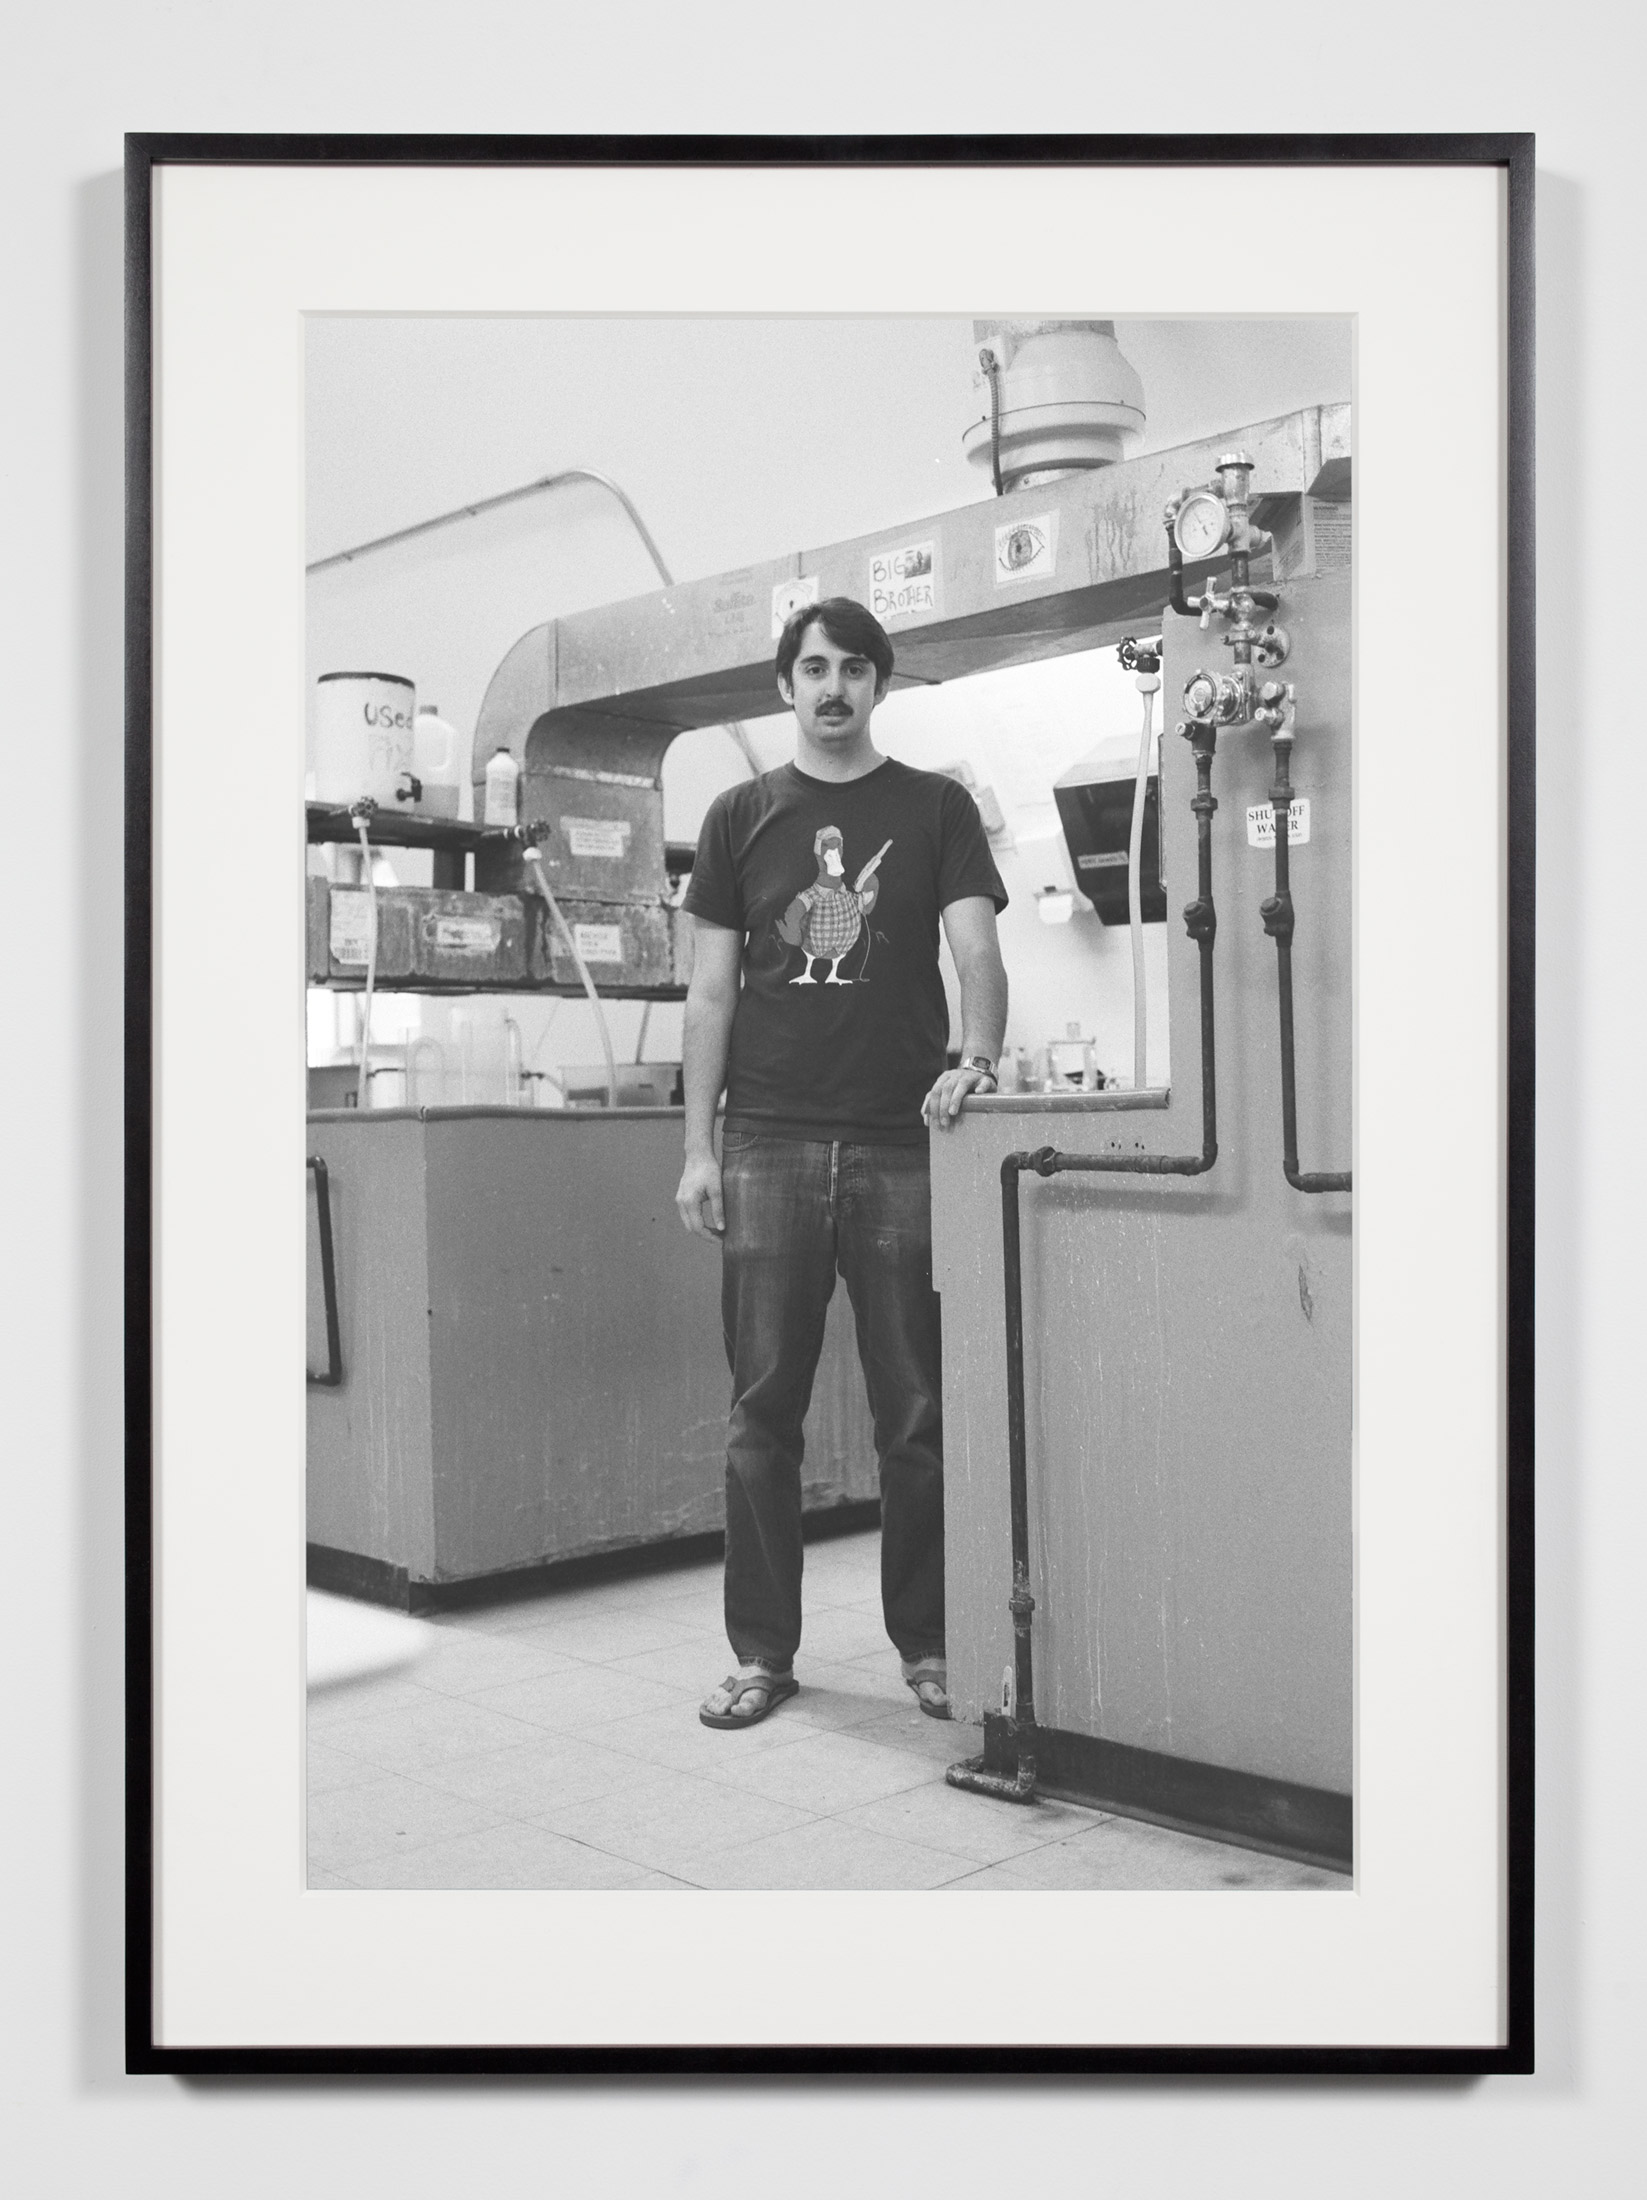 College Darkroom Technician, Annandale-on-Hudson, New York, July 11, 2009    2011   Epson Ultrachrome K3 archival ink jet print on Hahnemühle Photo Rag paper  36 3/8 x 26 3/8 inches   Industrial Portraits, 2008–